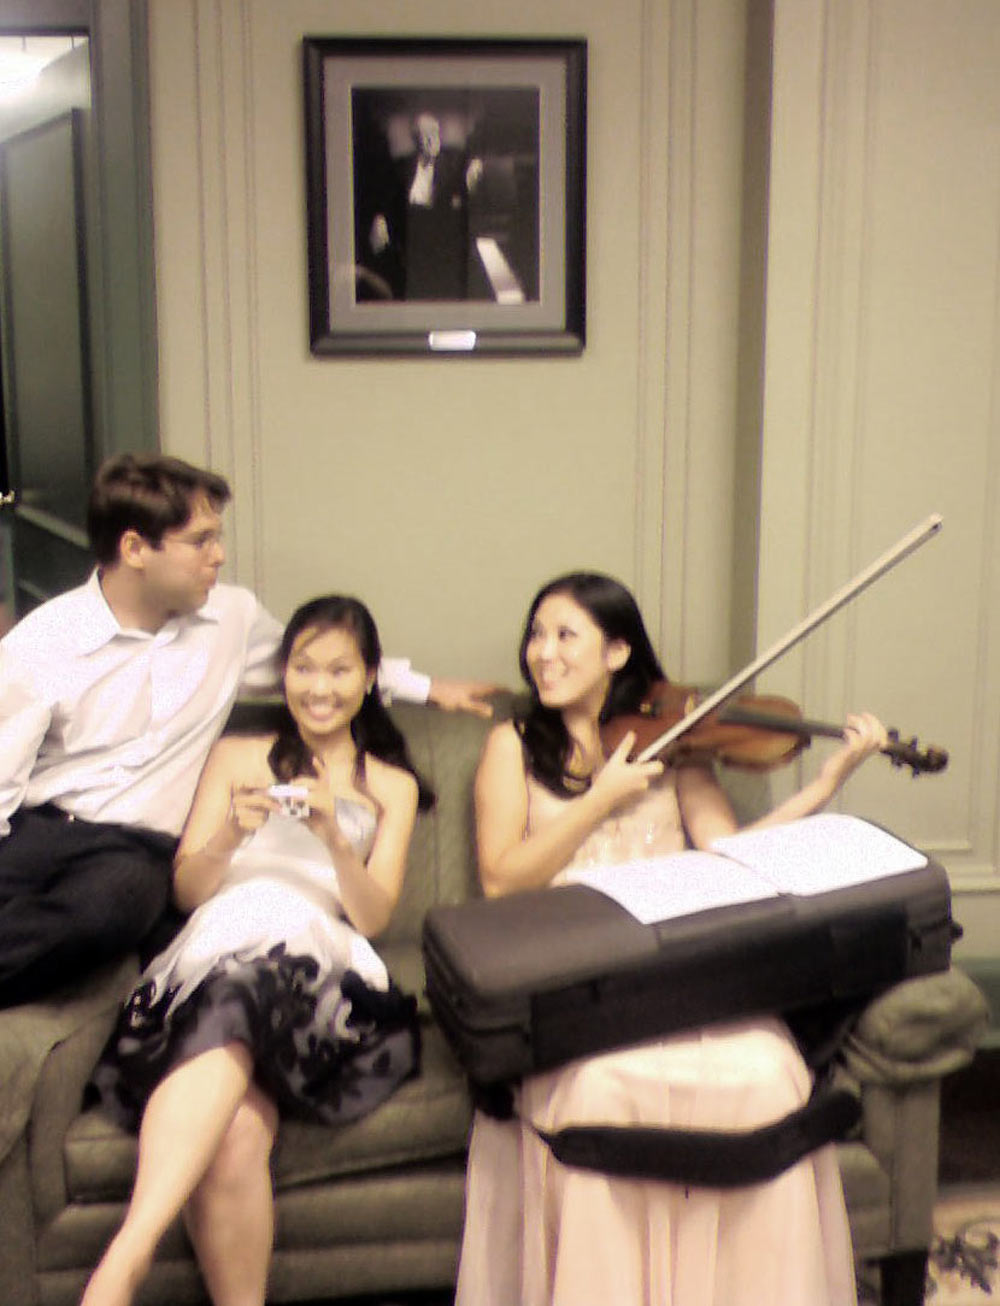 Victor, Heeyeon, and Yeolim in the green room before a concert of Mahle's music at Steinway Hall, New York, NY